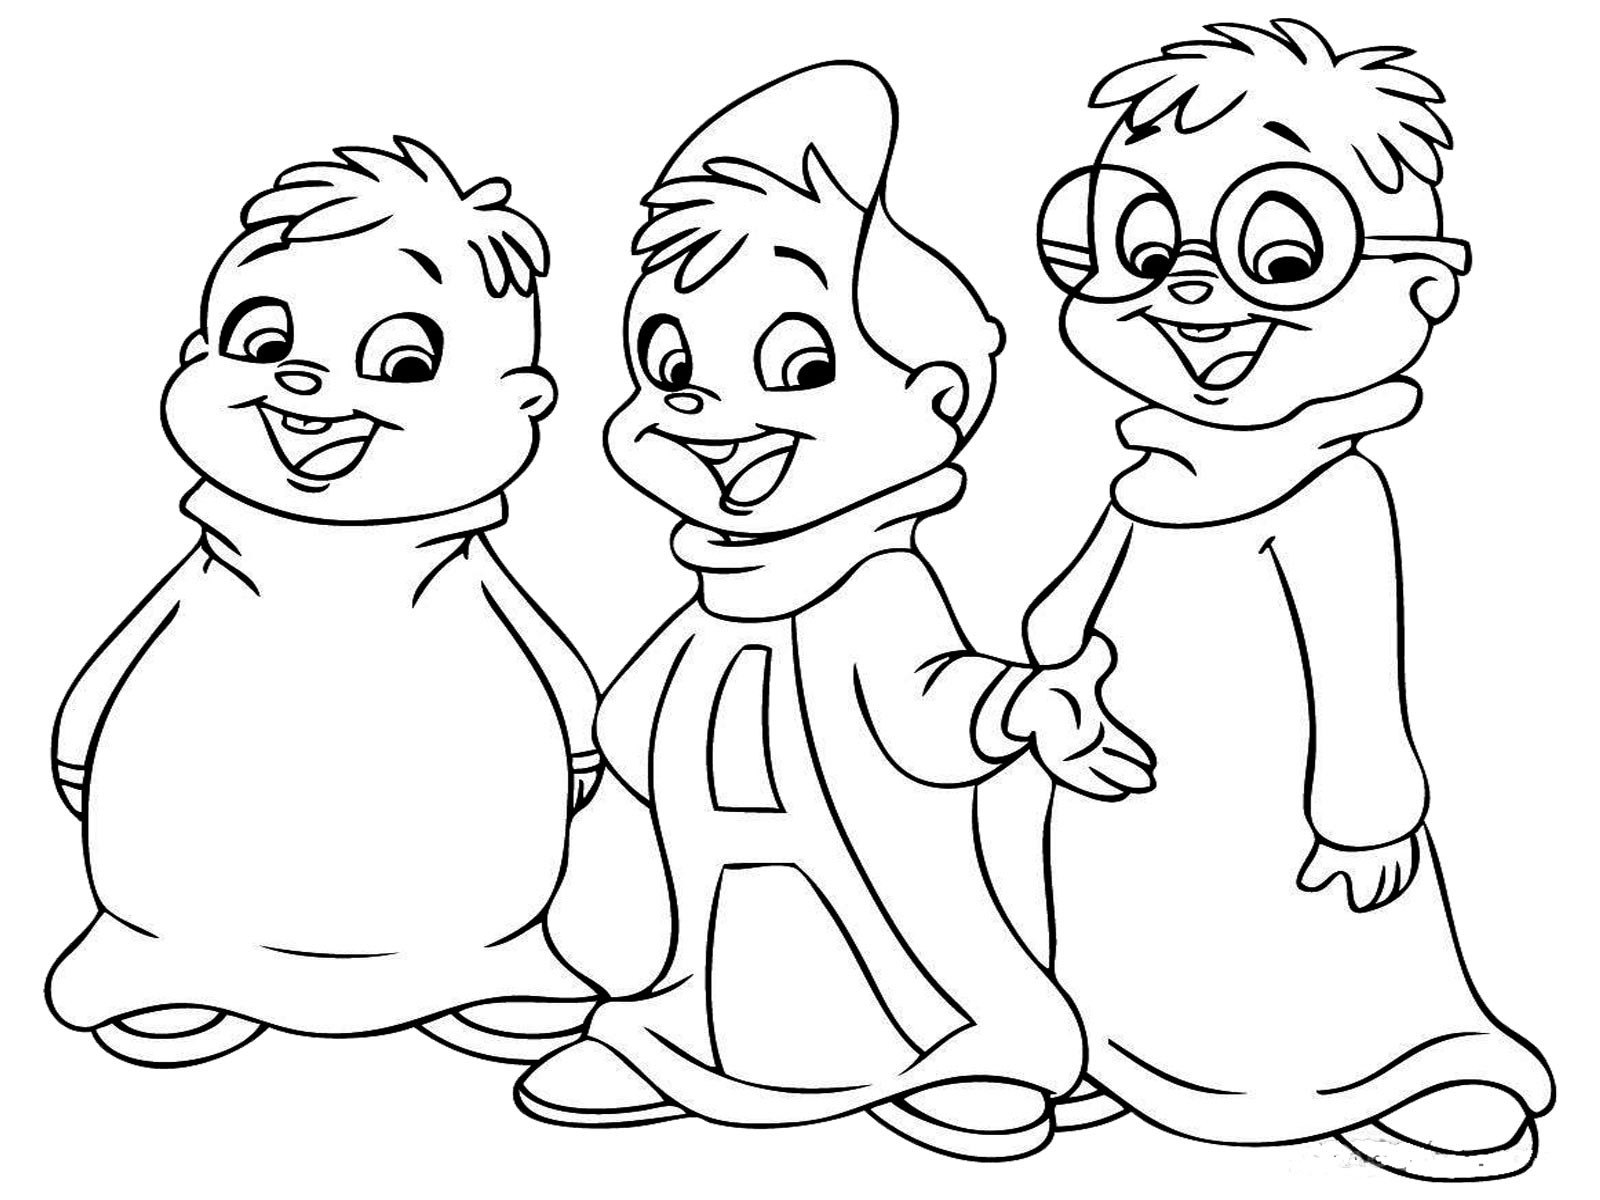 Boy Coloring Book Pages  Boys Coloring Pages Bestofcoloring